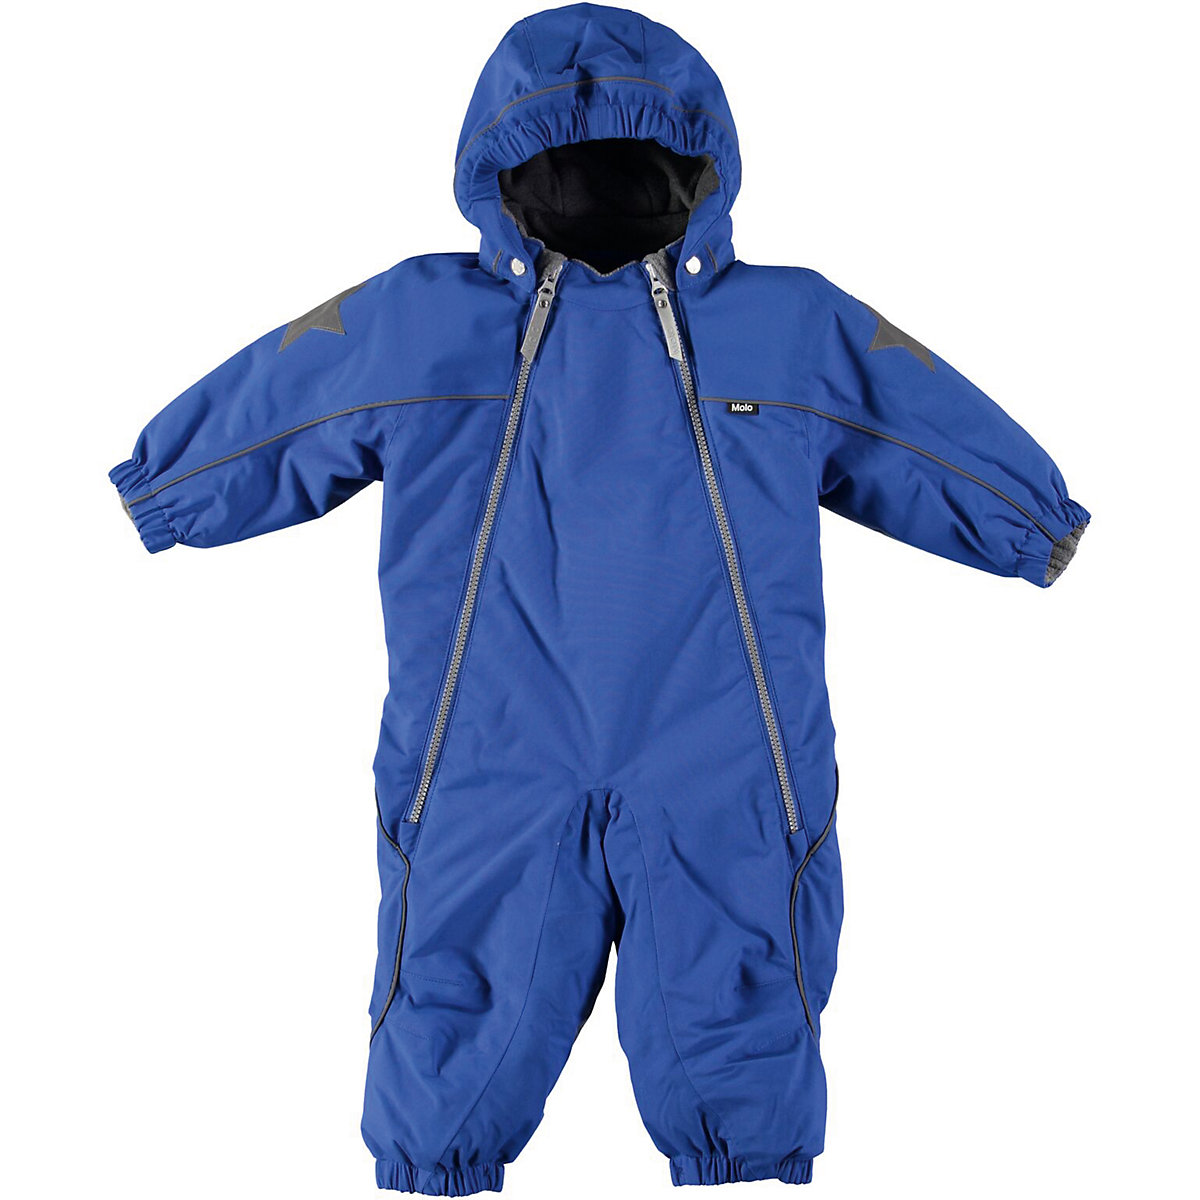 Overalls MOLO for boys 9170716 Baby Rompers Jumpsuit Children clothes Kids baby rompers summer baby boy clothes gentleman newborn baby clothes infant jumpsuits roupas bebe baby boy clothing kids clothes